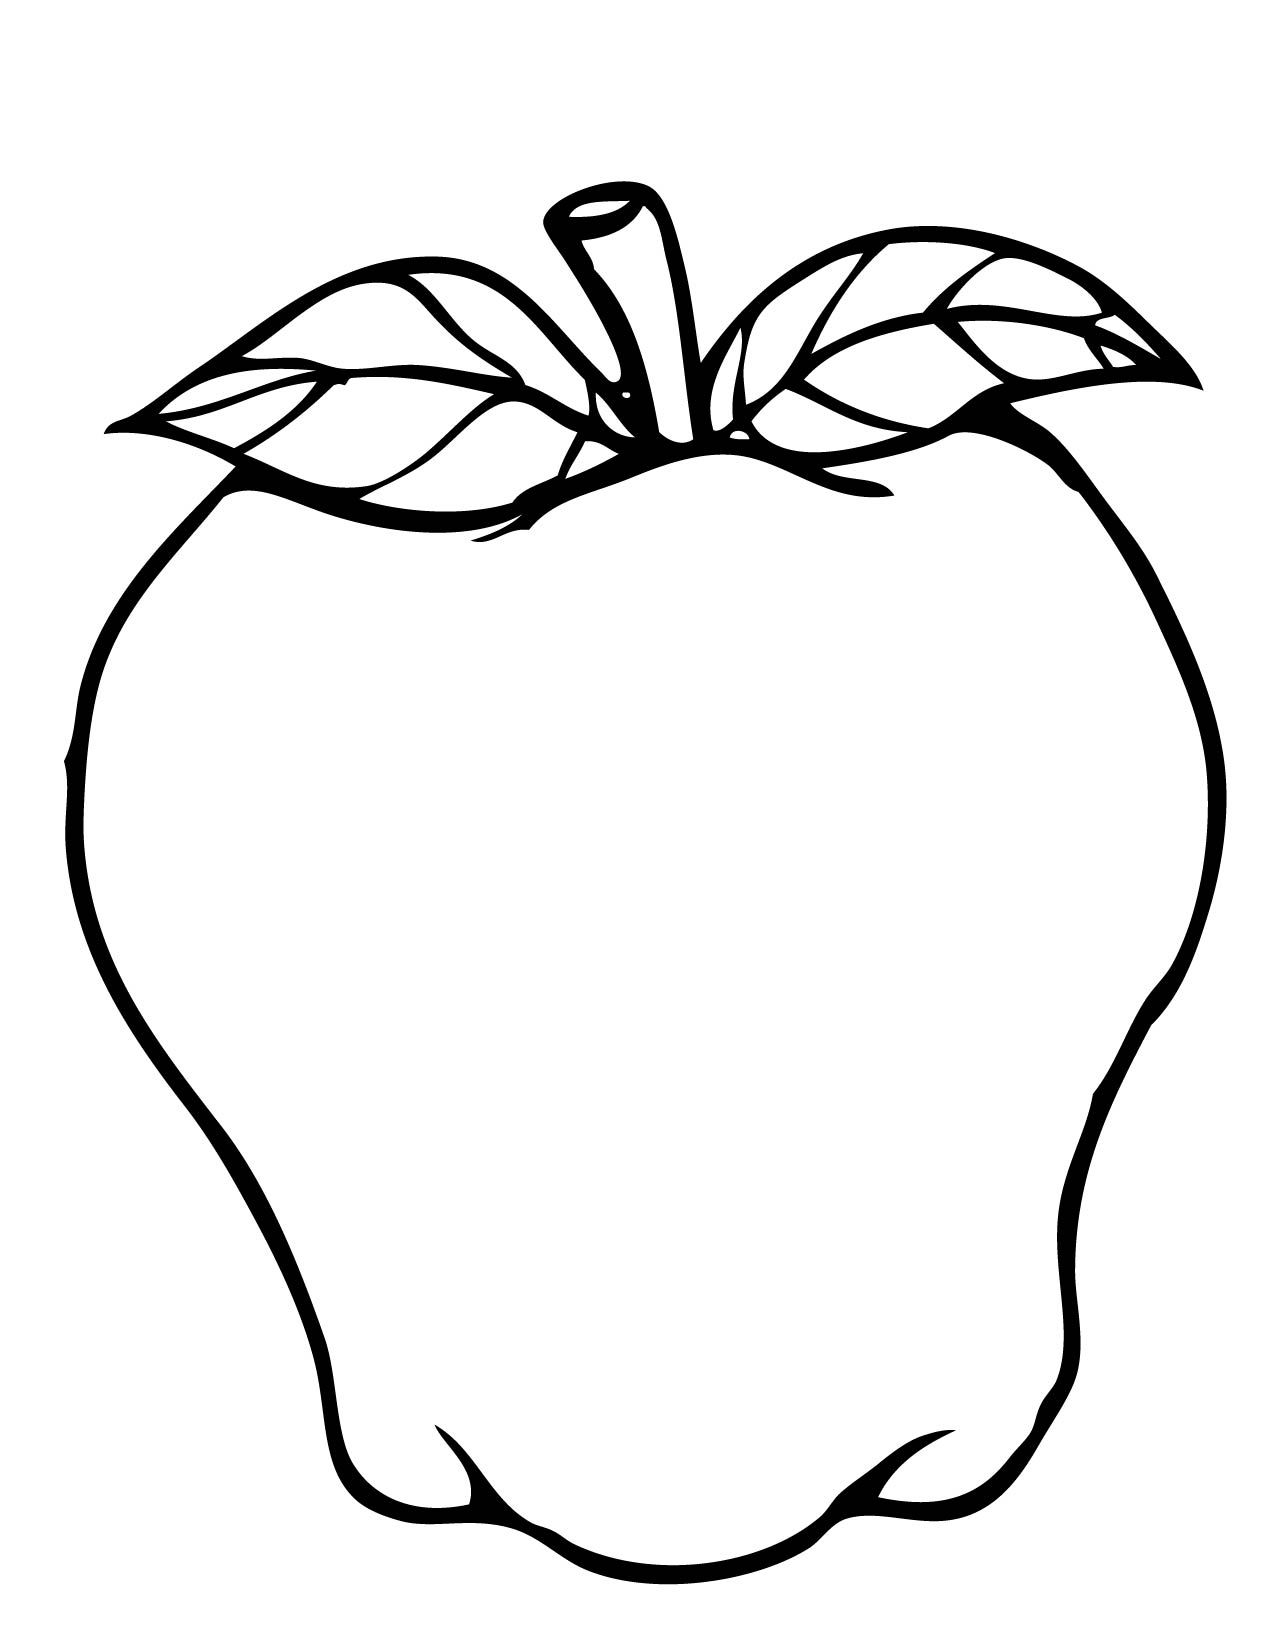 apple to color apples coloring pages learn to coloring to apple color